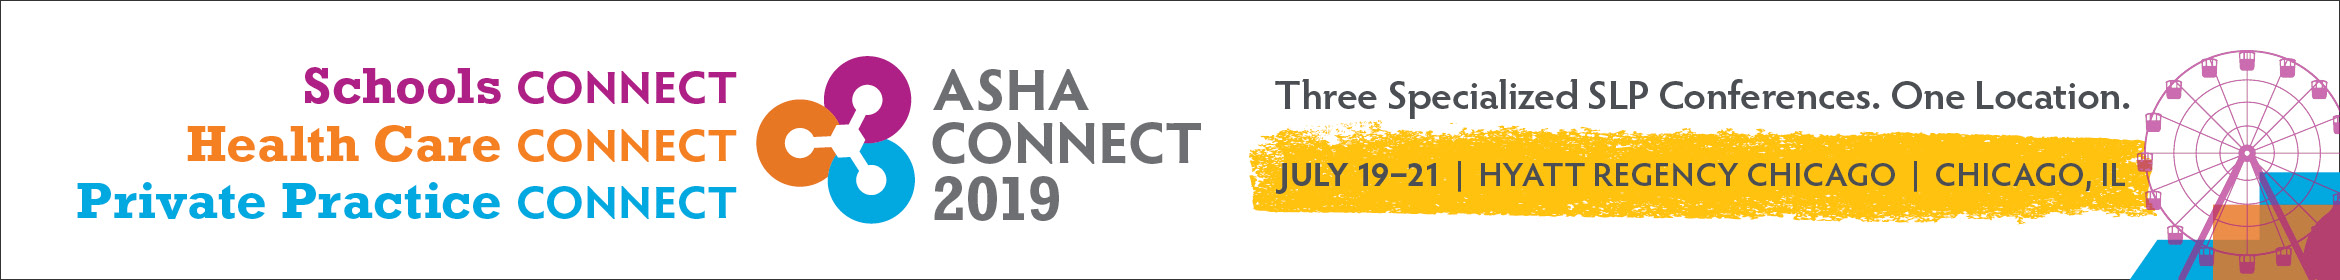 ASHA Connect 2019 Main banner